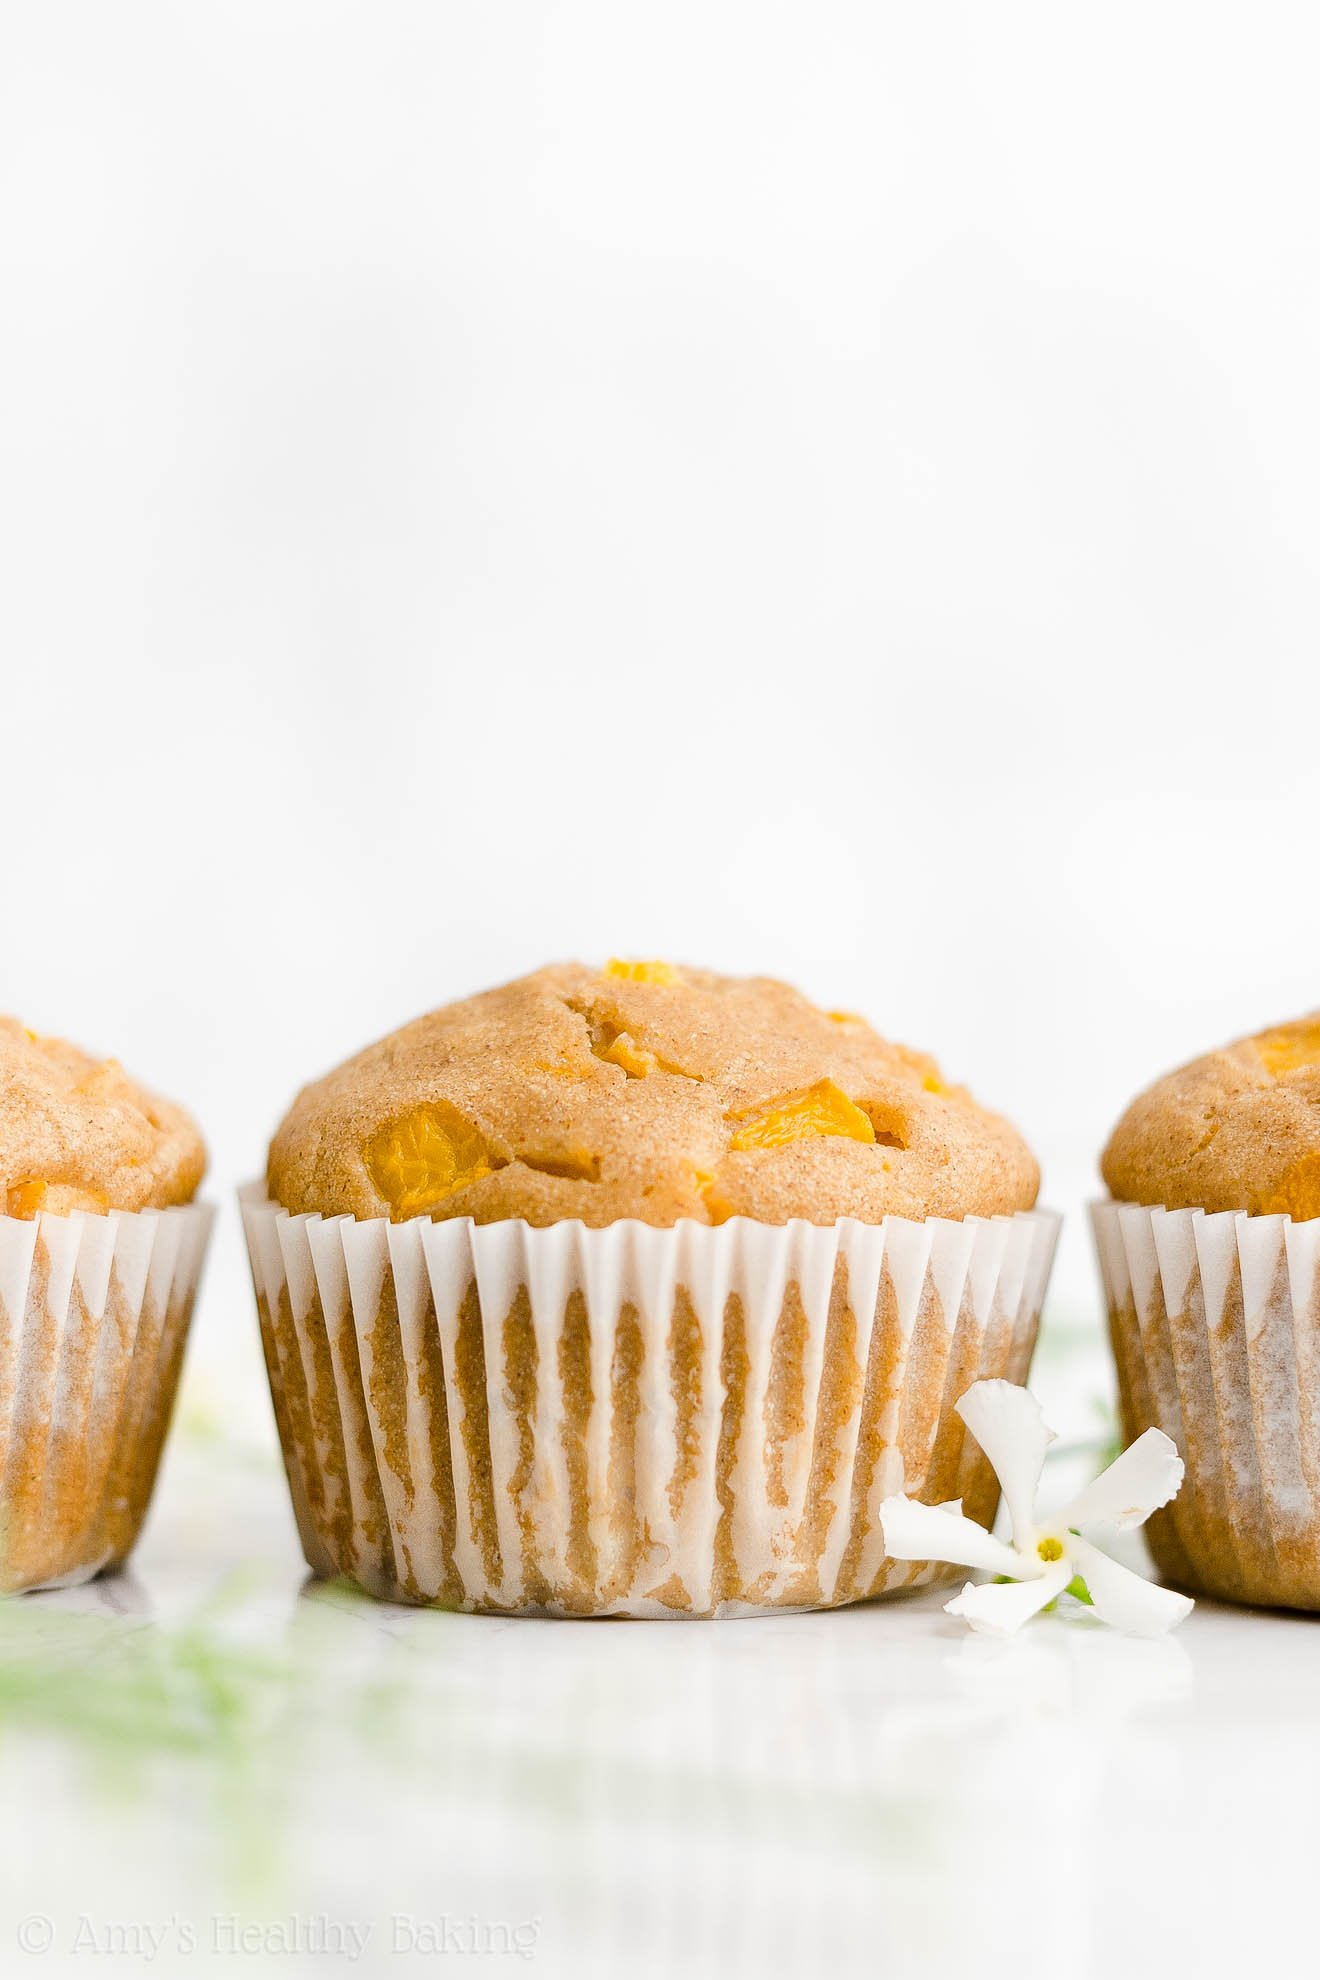 Best Easy Healthy No Sugar Gluten Free Greek Yogurt Canned Peach Muffins